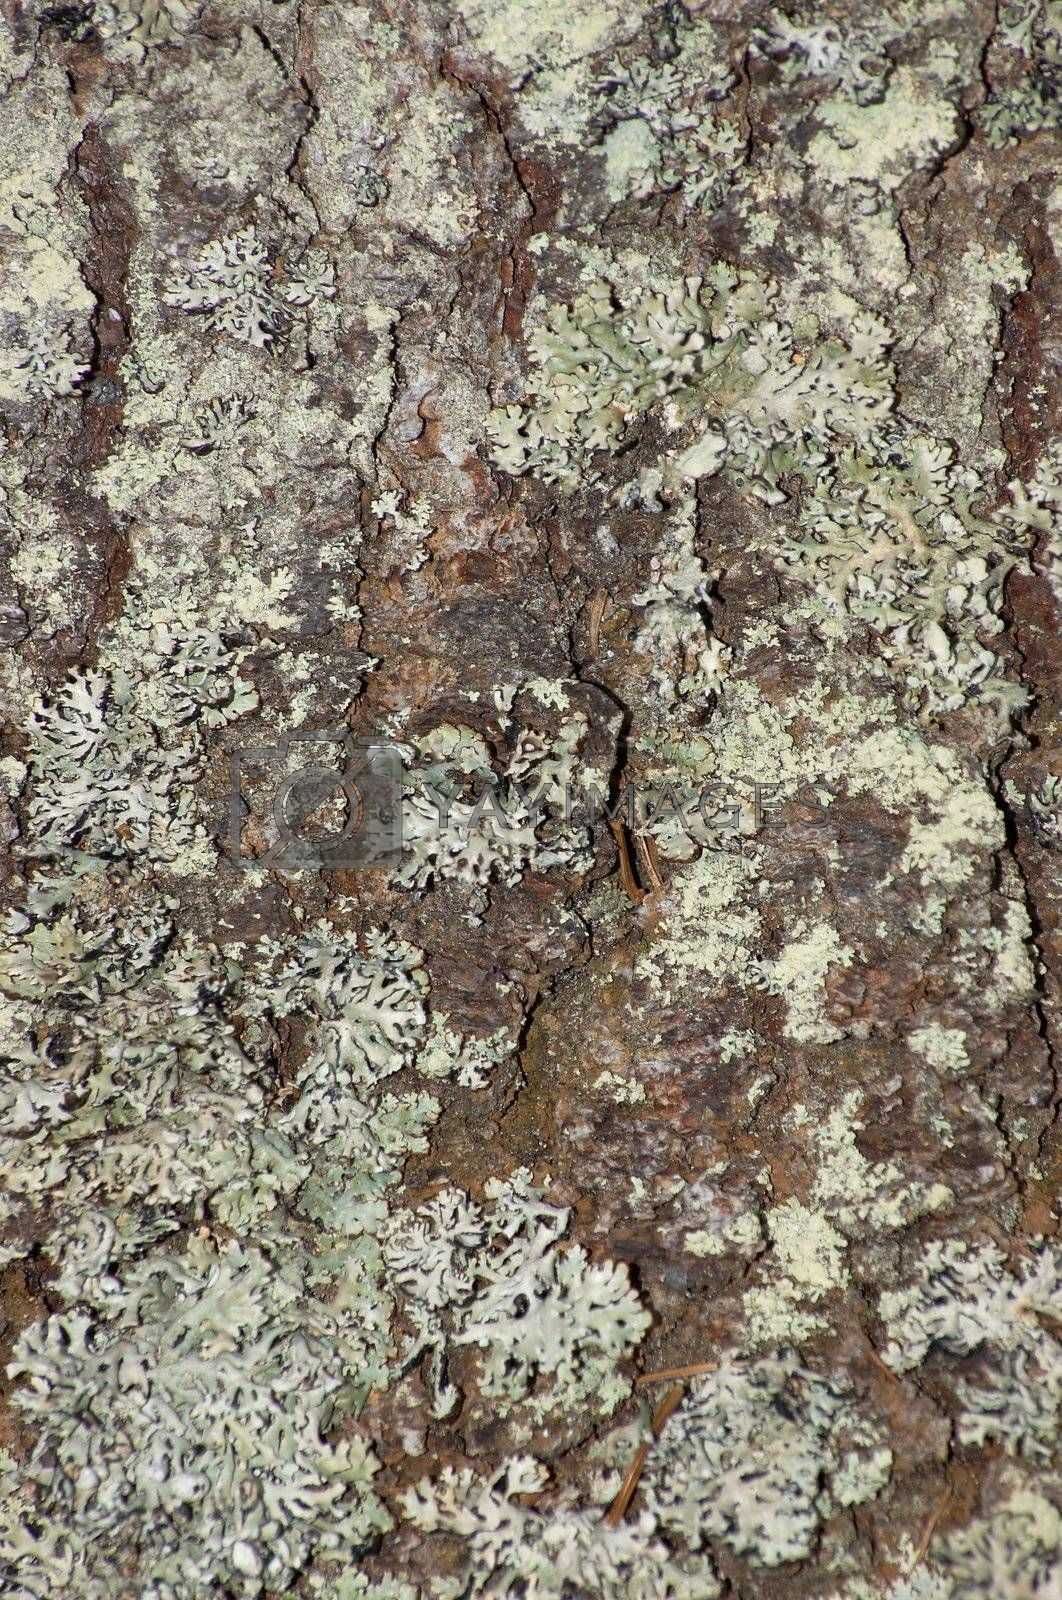 The connatural texture representing a cortex of a coniferous tree